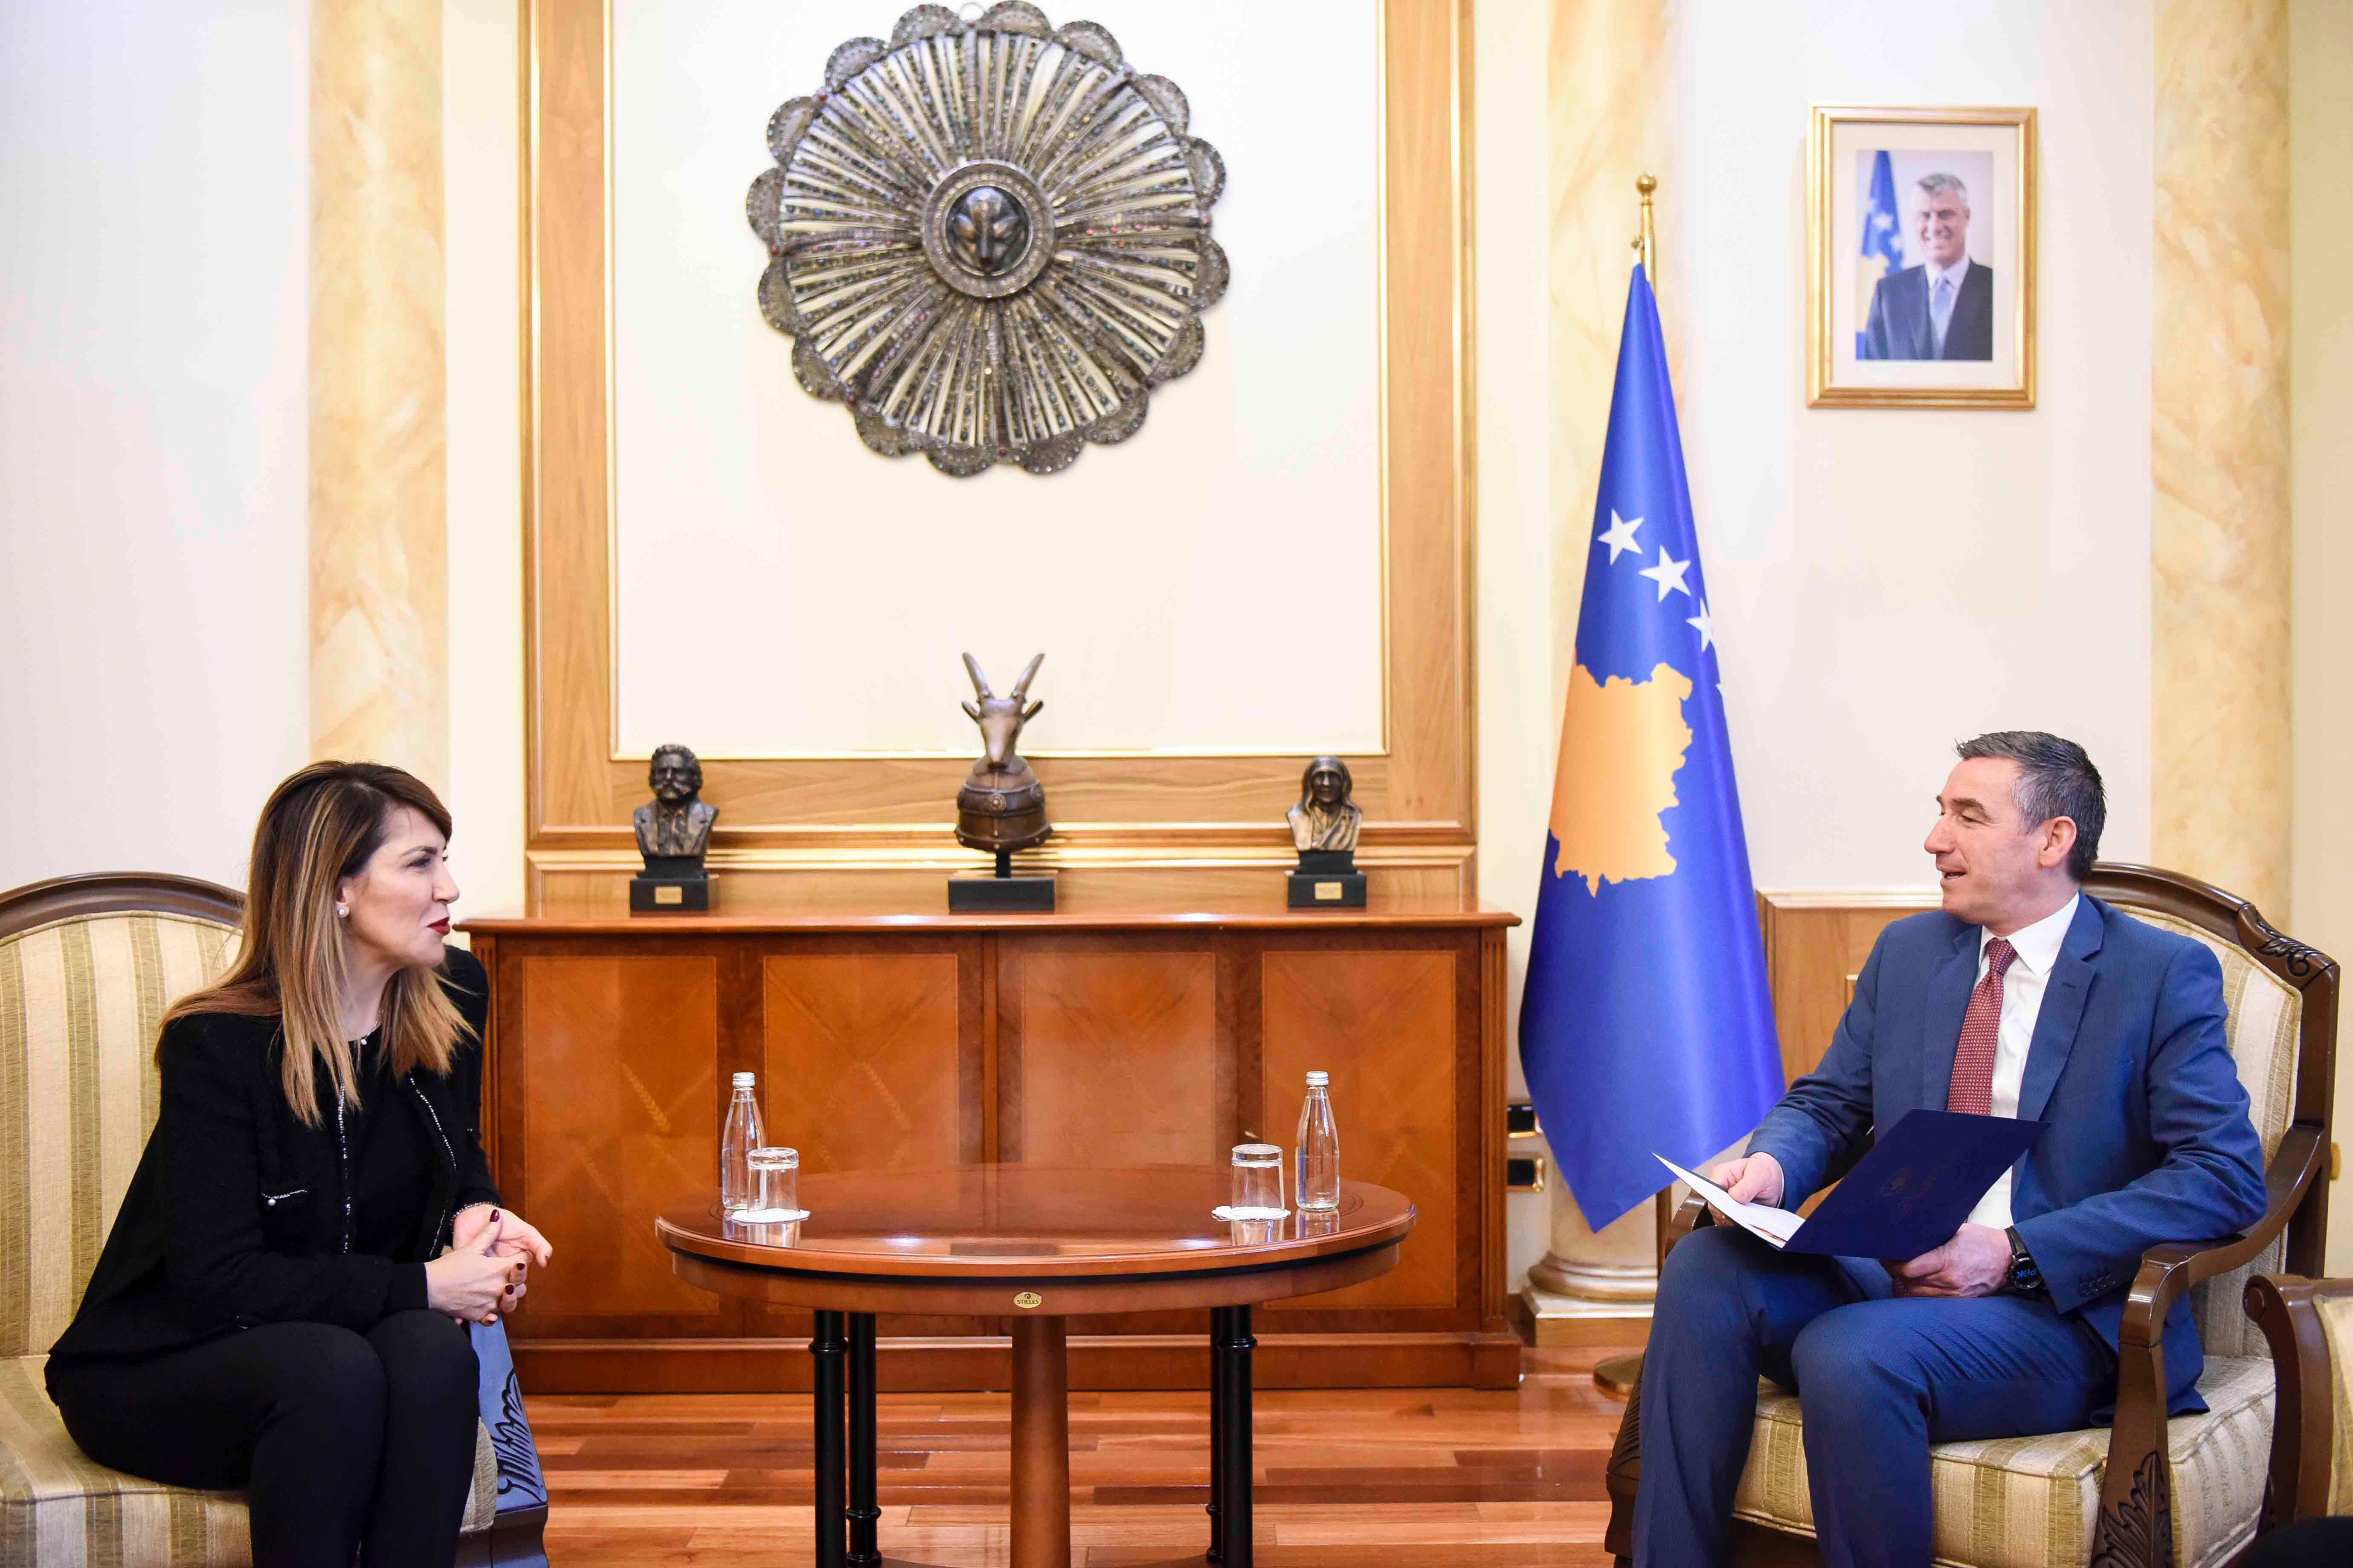 RCC Secretary General Majlinda Bregu and Speaker of the Parliament Kadri Veseli, on 18 January 2019 in Pristina. (Photo: Courtesy of the Office of the Speaker of the Parliament)